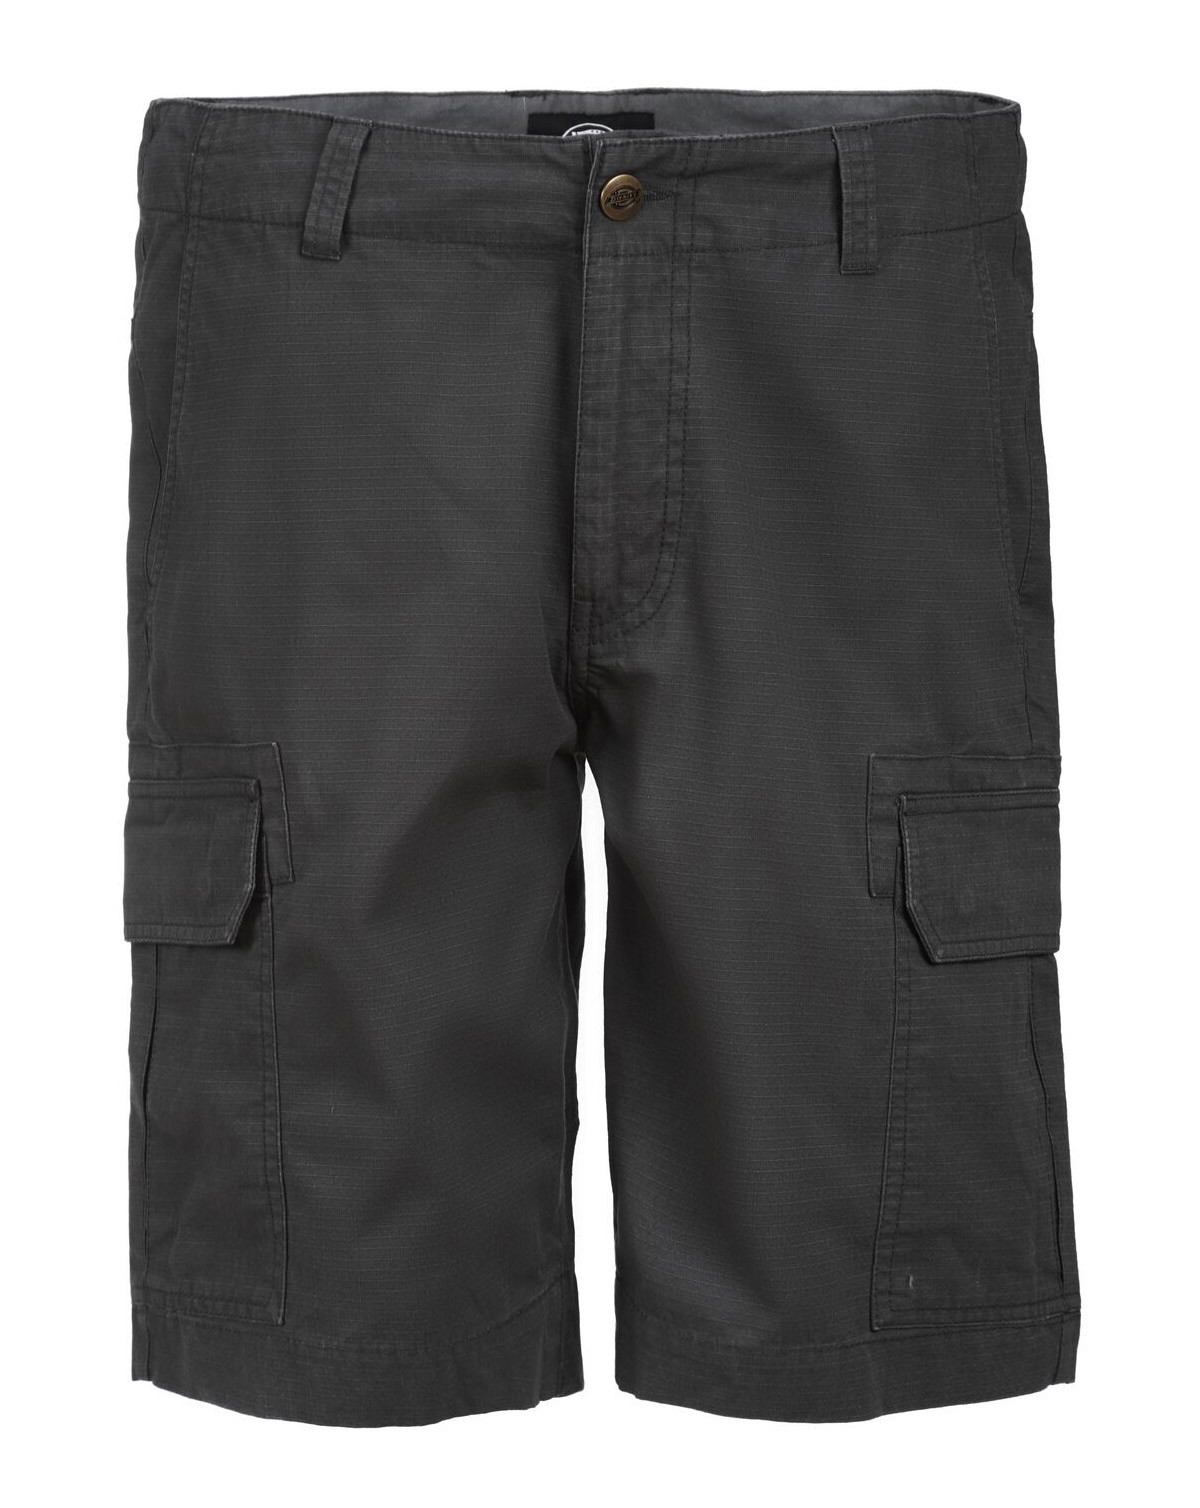 "Dickies 10"" New York Cargo Shorts (Charcoal, W30)"